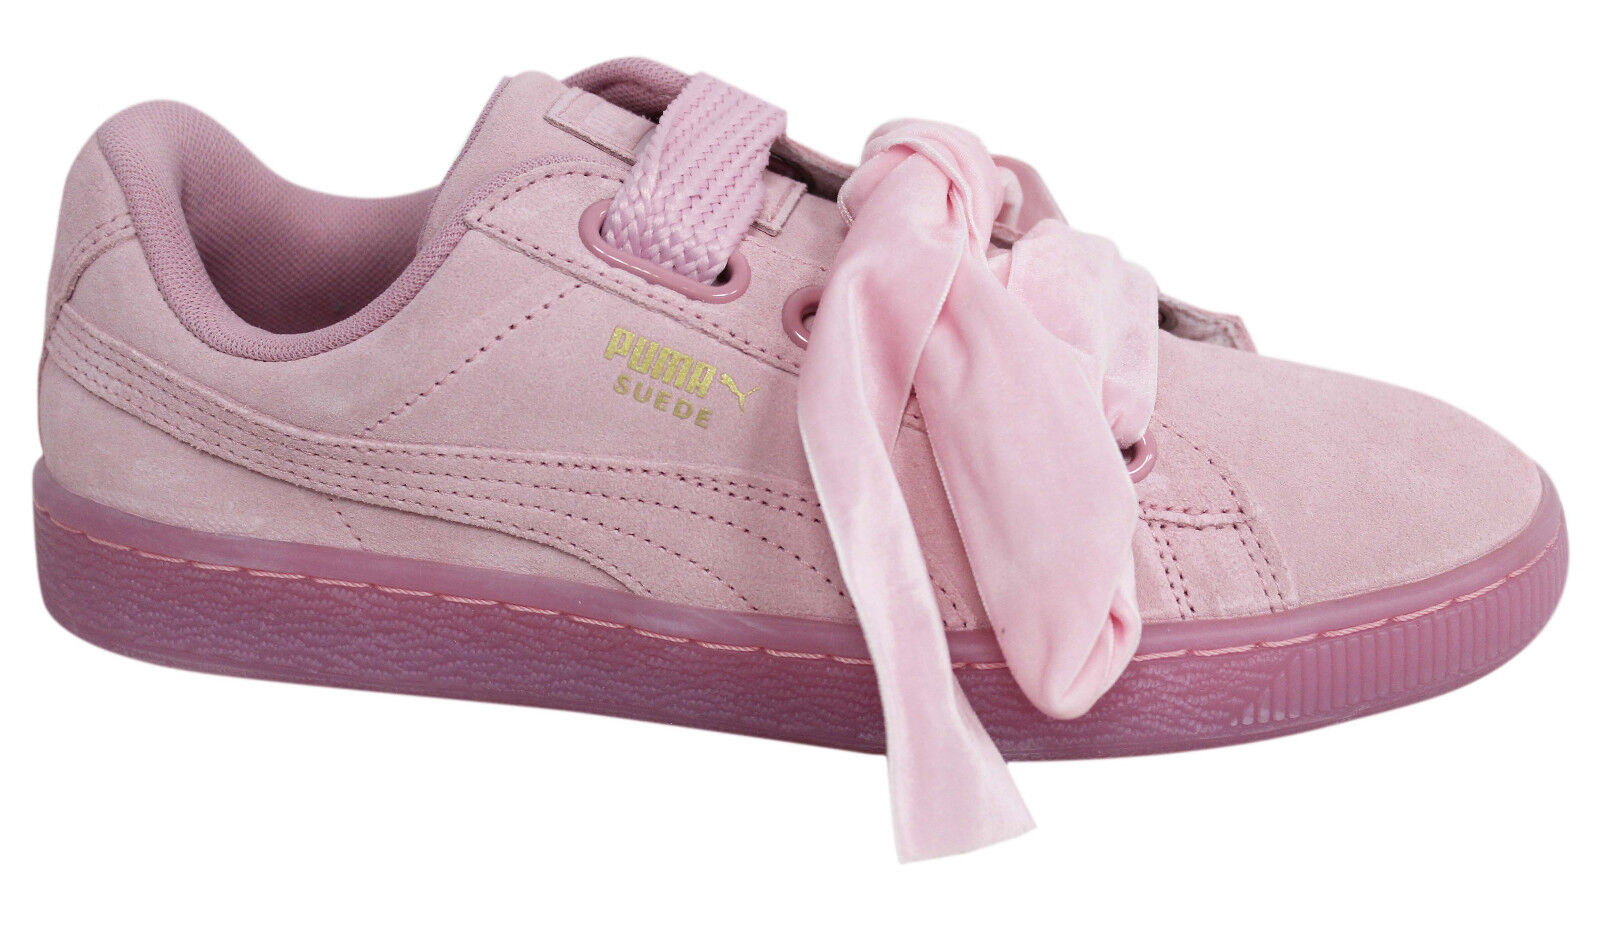 Puma Suede Heart Reset Lace Up Pink Leather Womens Trainers 363229 02 Q7